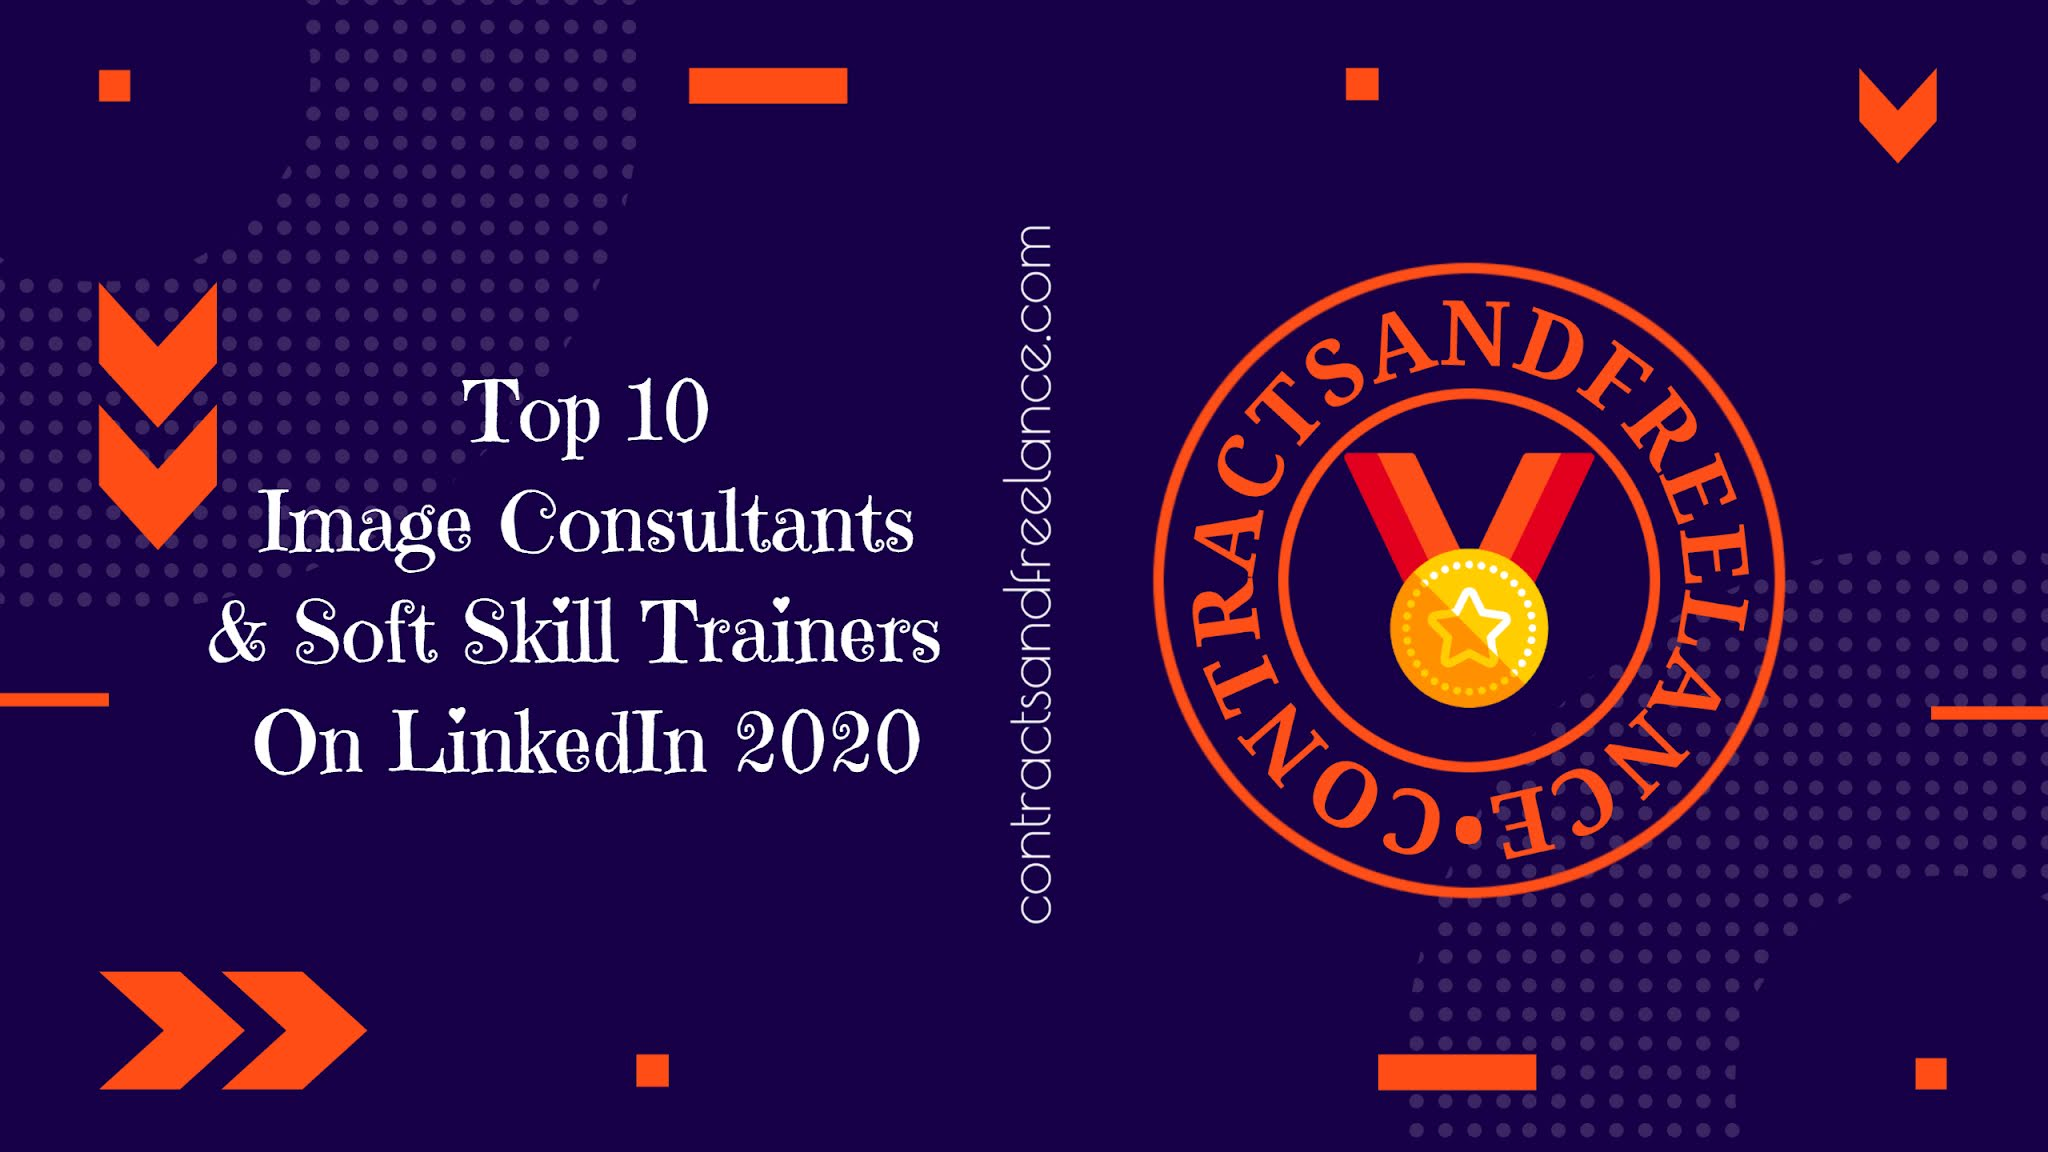 Top 10 Image Consultants, Soft Skill Trainers, Image Management, Personal Branding, Best Image Consultants and Soft Skill Trainers